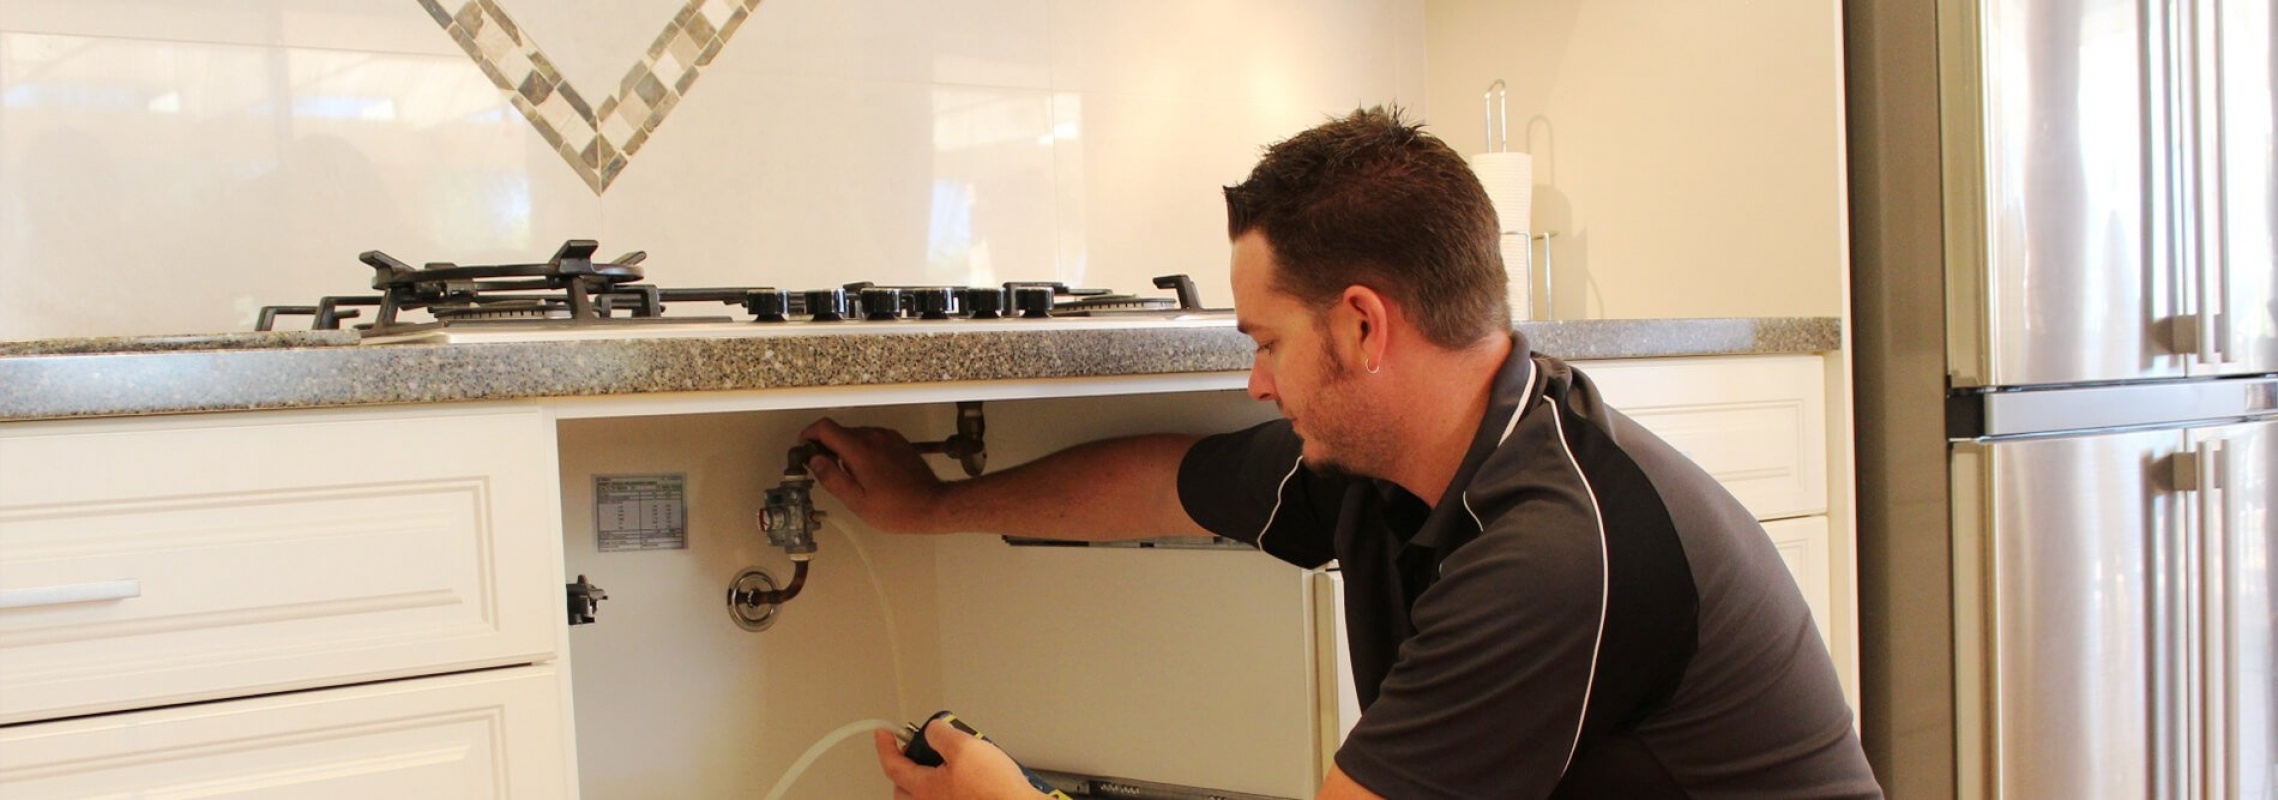 golden-beach-qld-blocked-drains-plumbers-pipe-clearing-service